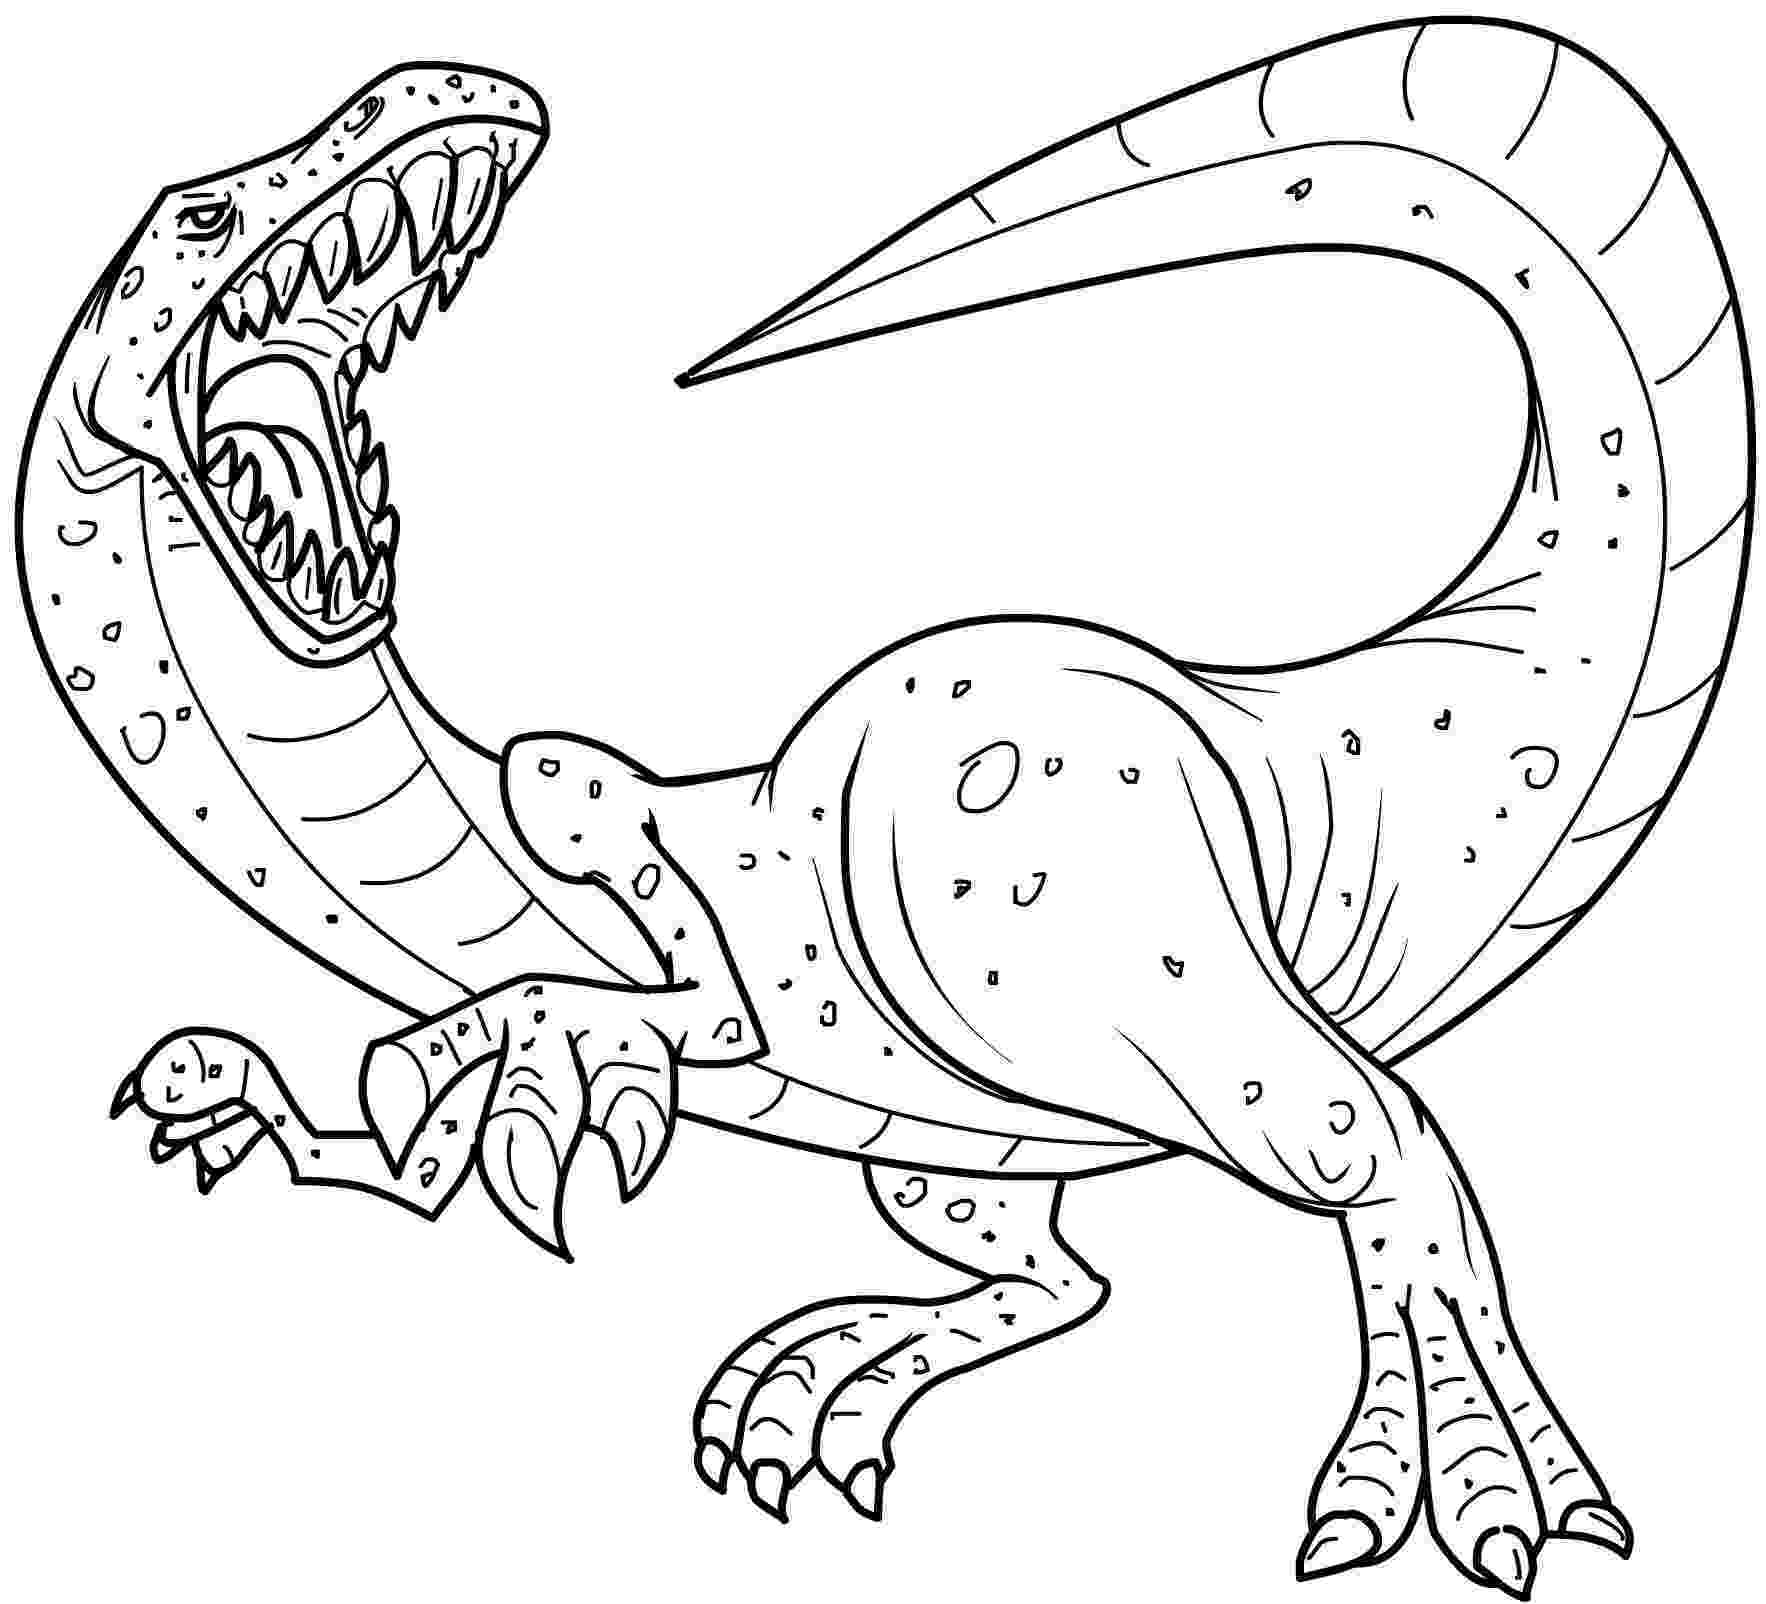 dinosaurs pictures dinosaur coloring pages to download and print for free pictures dinosaurs